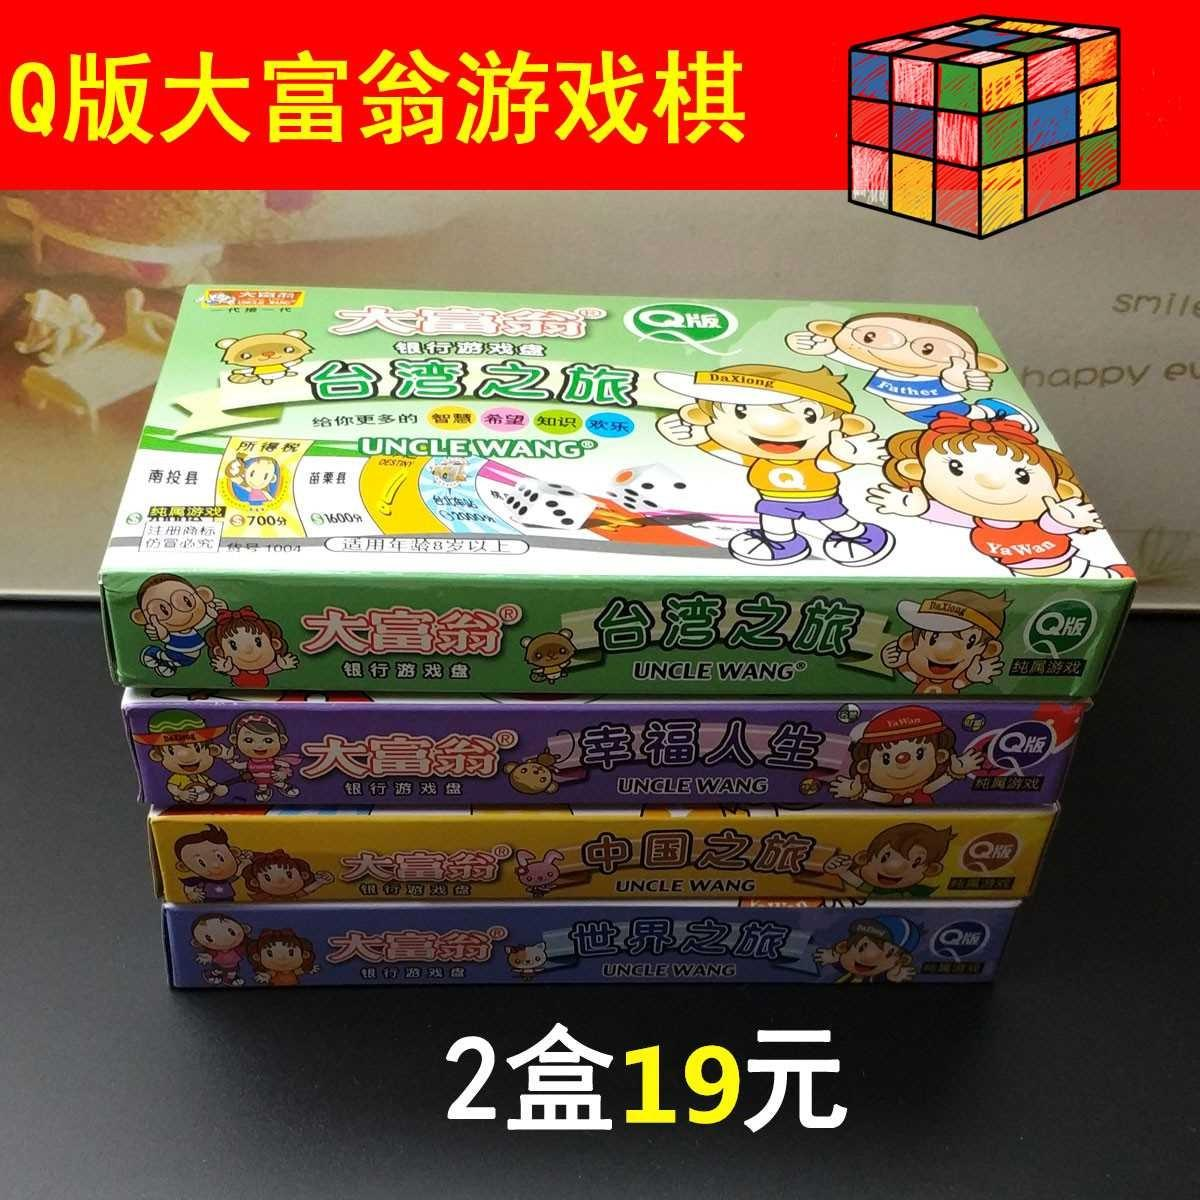 Full set of real estate entertainment tycoon pupils adventure leisure games gifts chess party board game family Q.